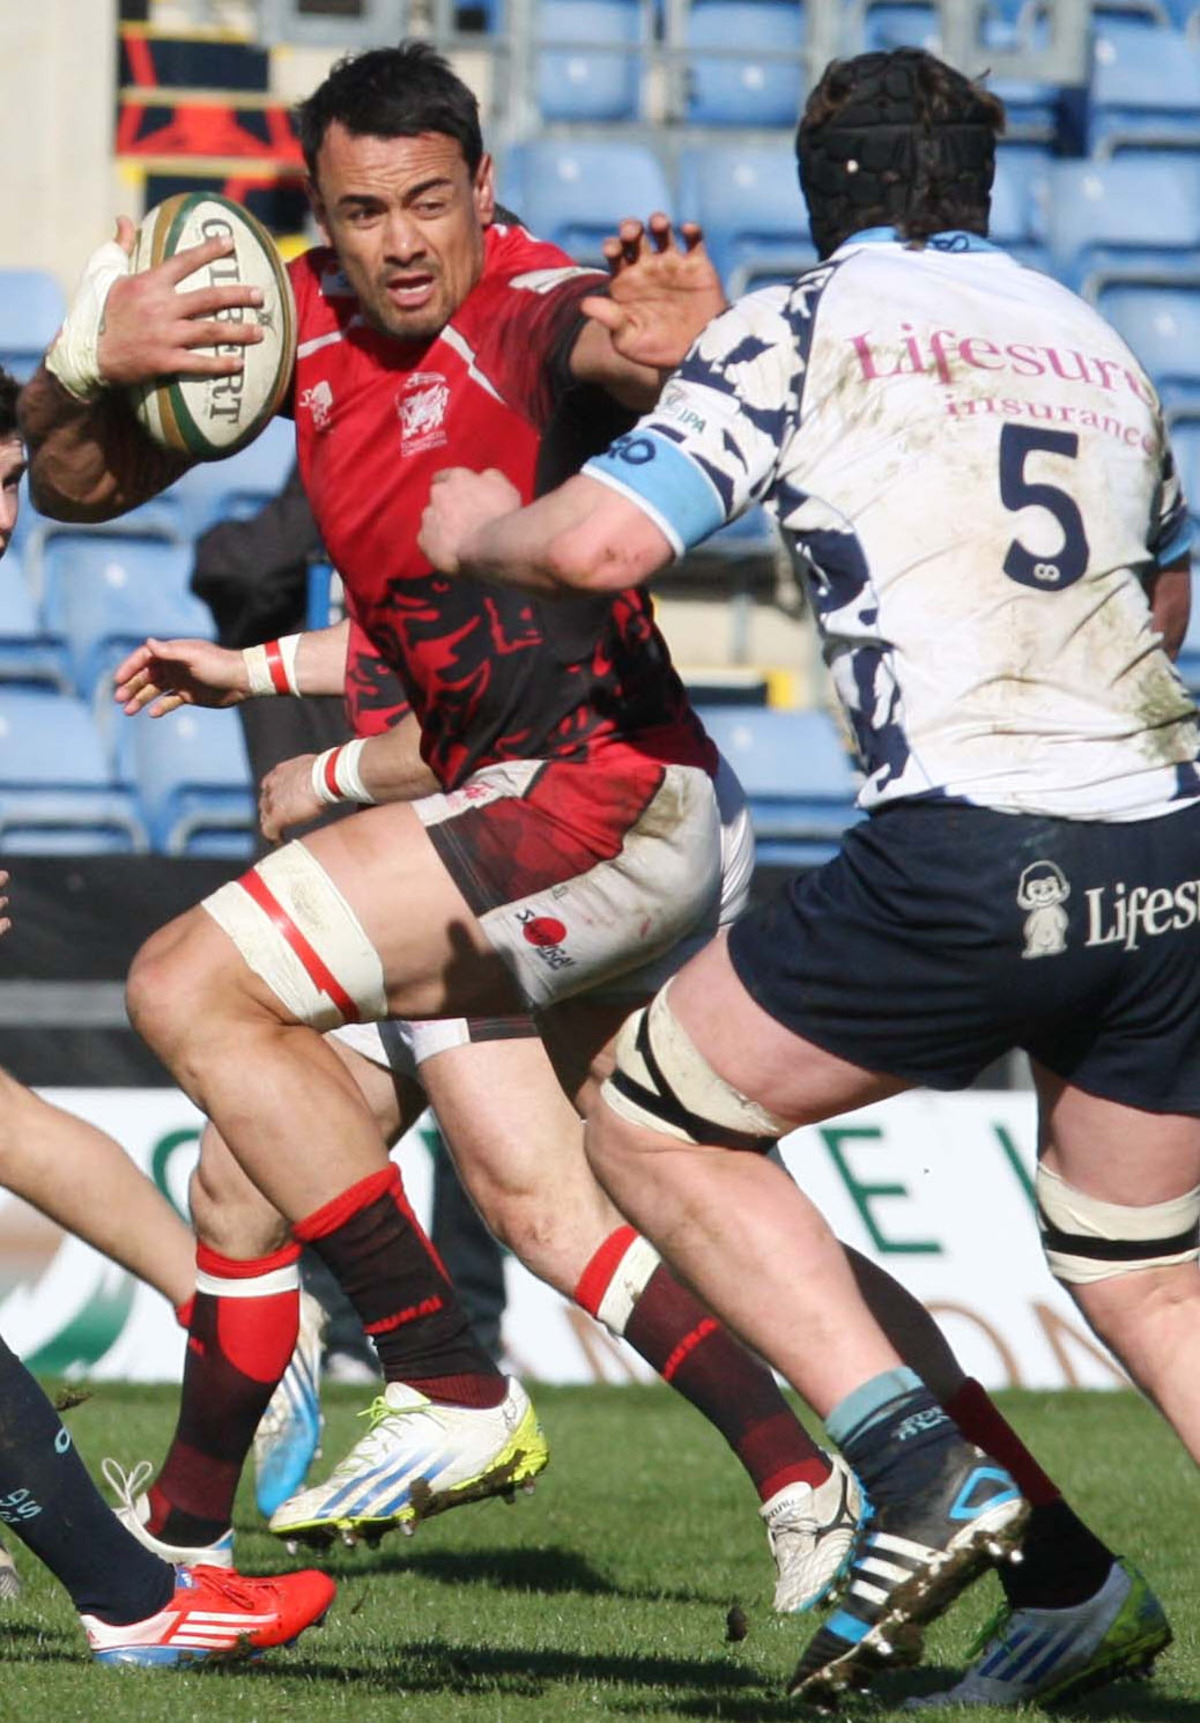 Daniel Browne in action for London Welsh against Bedford at the Kassam Stadium